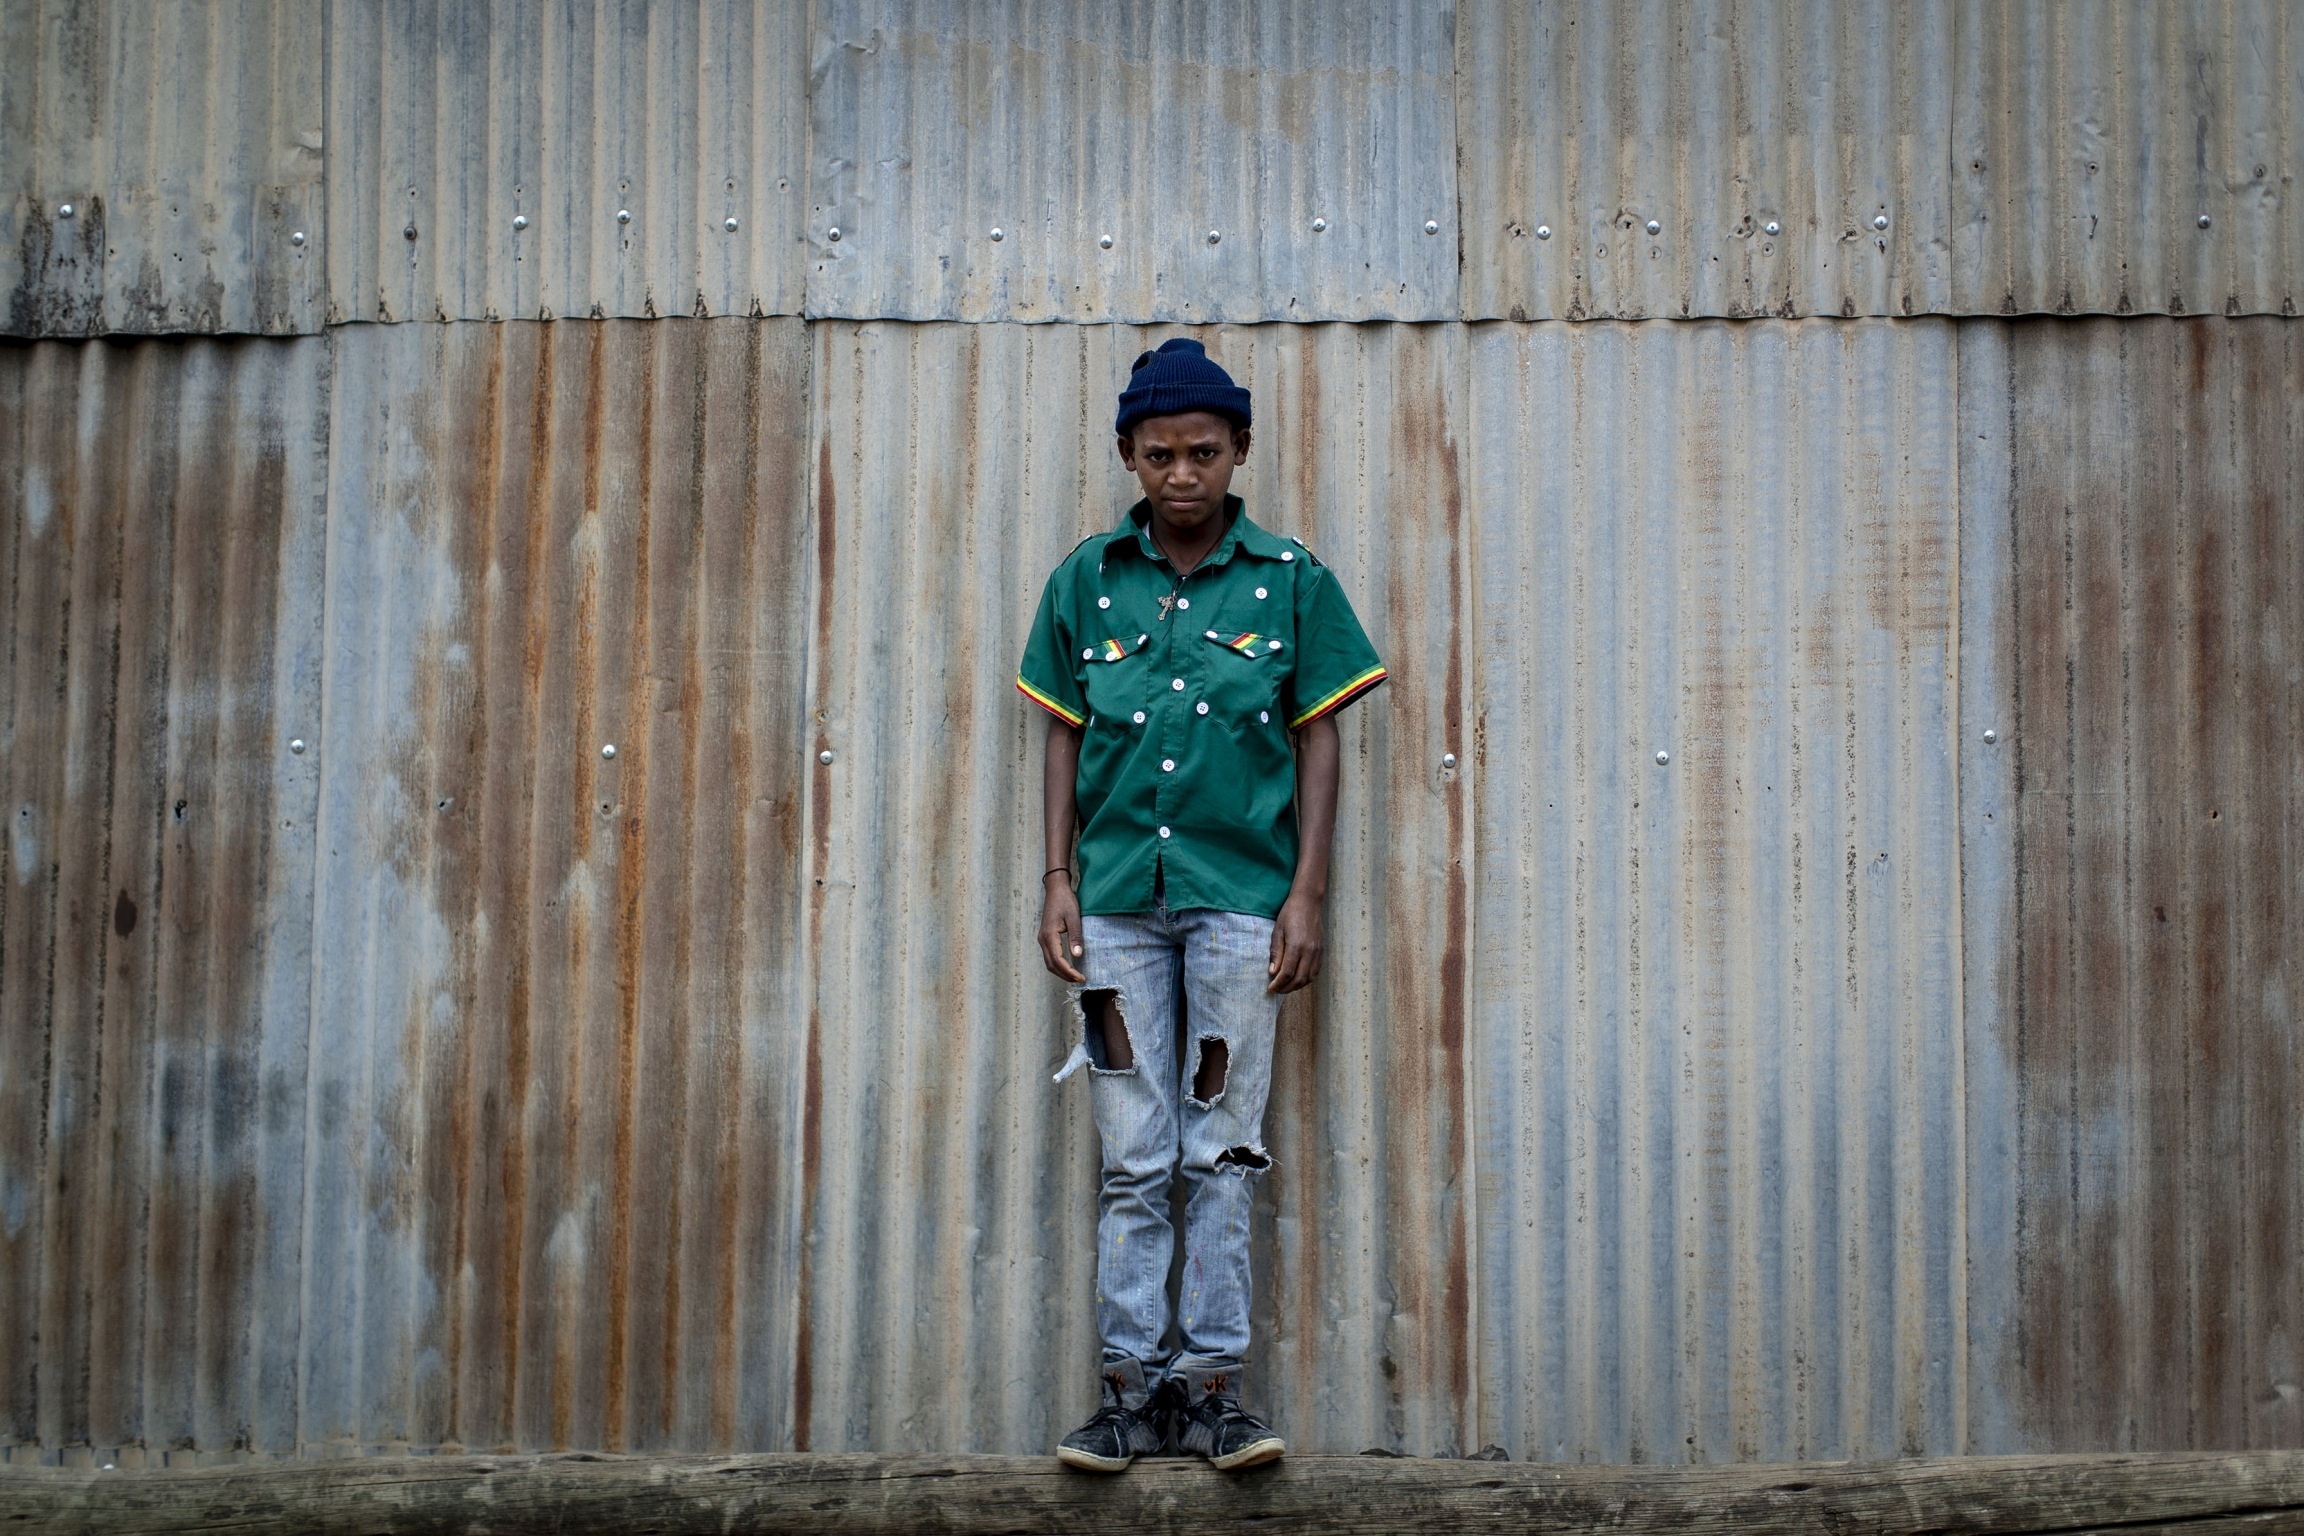 boy stands against corrugated steel wearing a green cultural shirt with buttons and jeans.